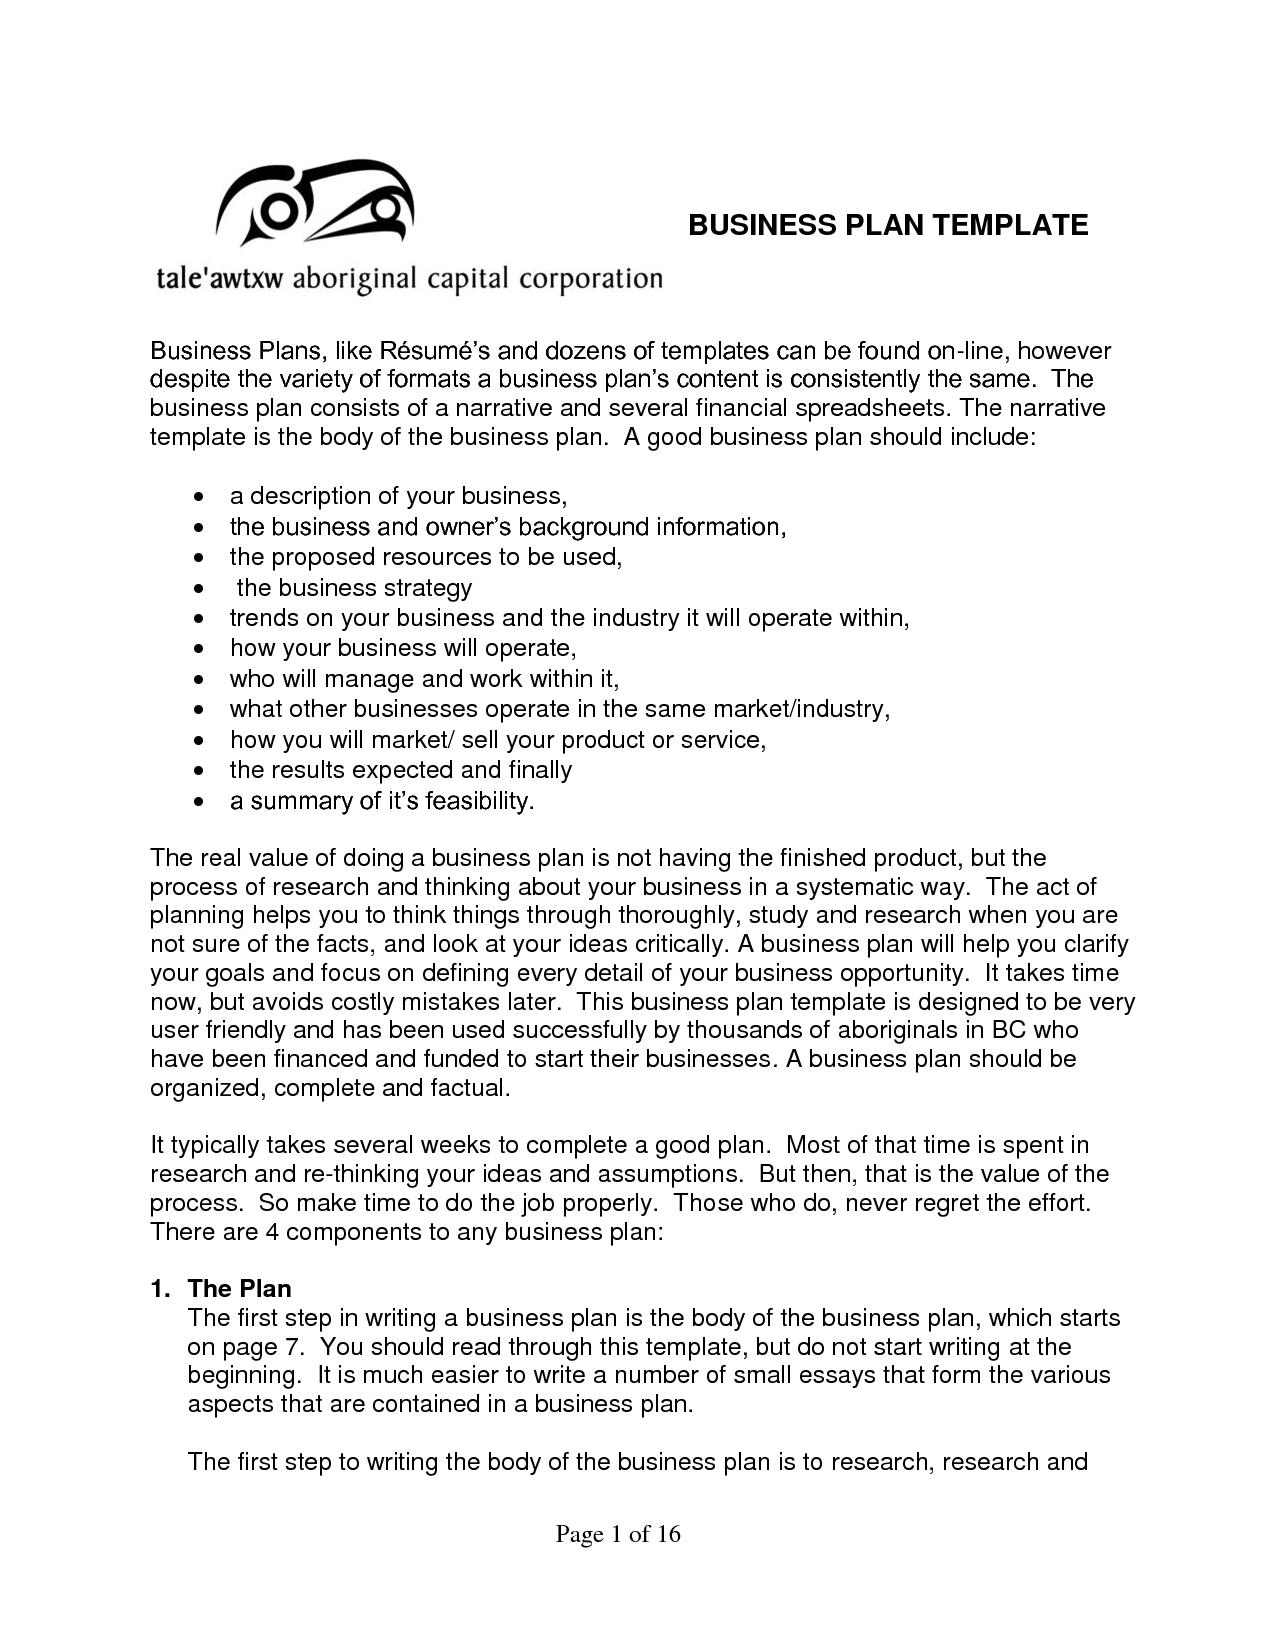 Start Up Business Plans Planning Business Strategies - How to start a business plan template